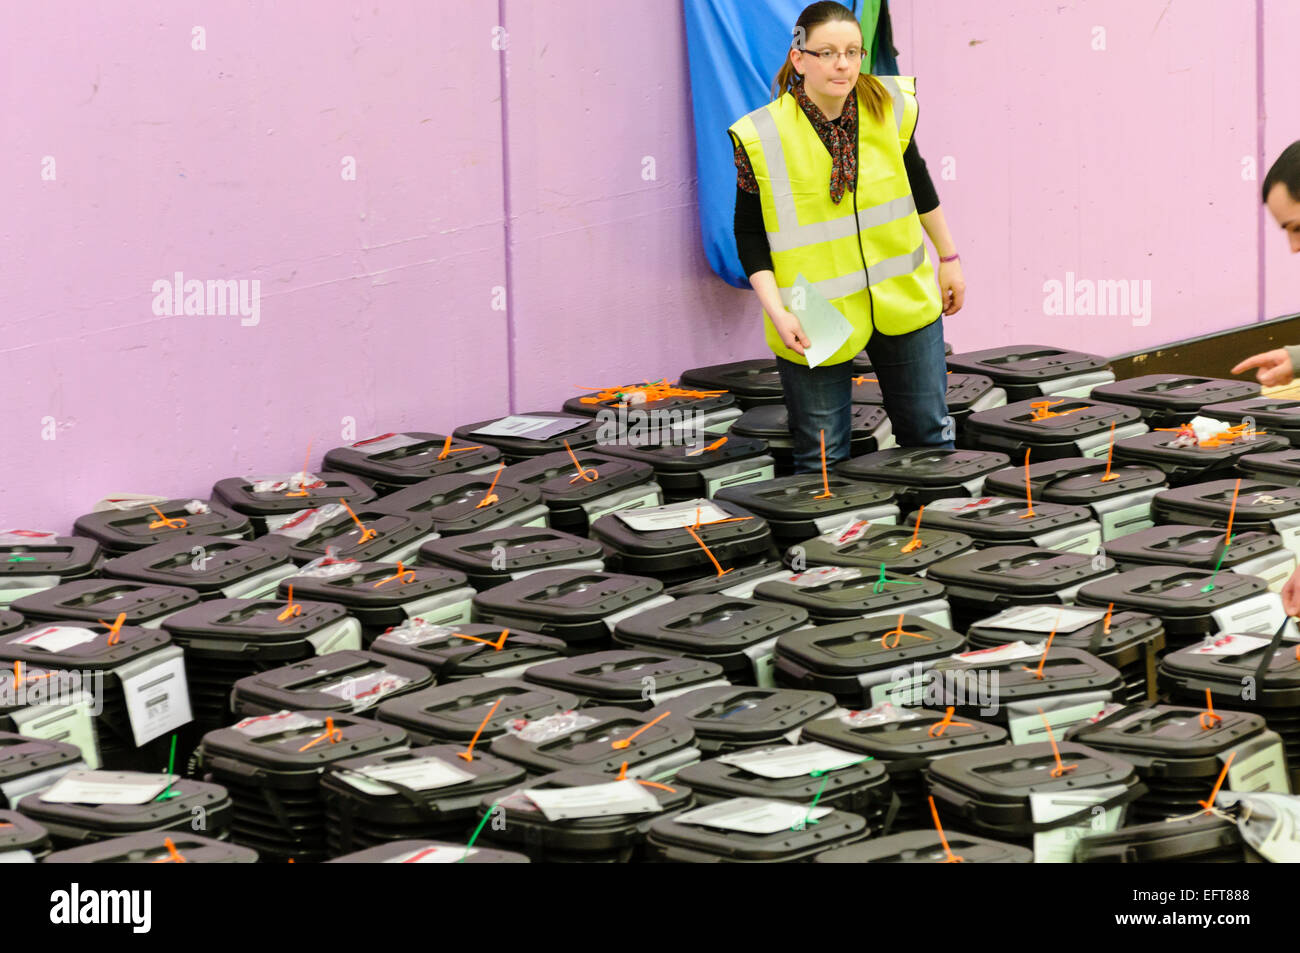 Ballot boxes are collected at a counting centre. - Stock Image